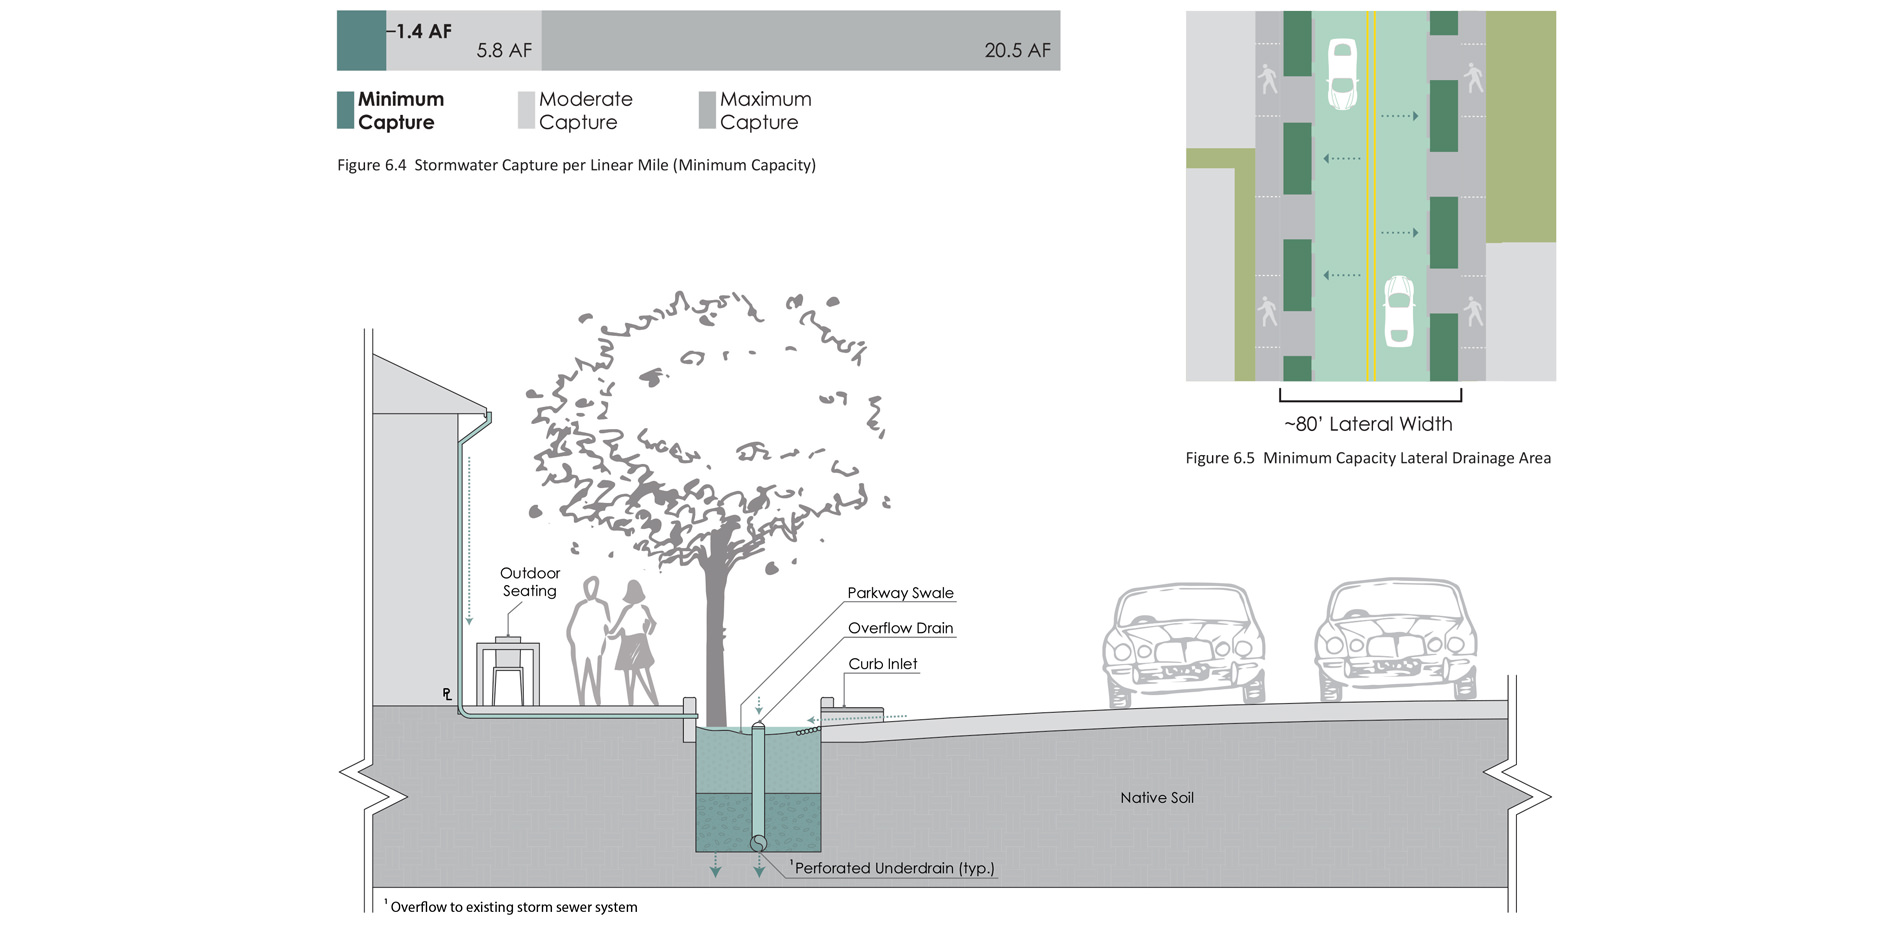 Rendering Los Angeles Green: The Greenways to Rivers